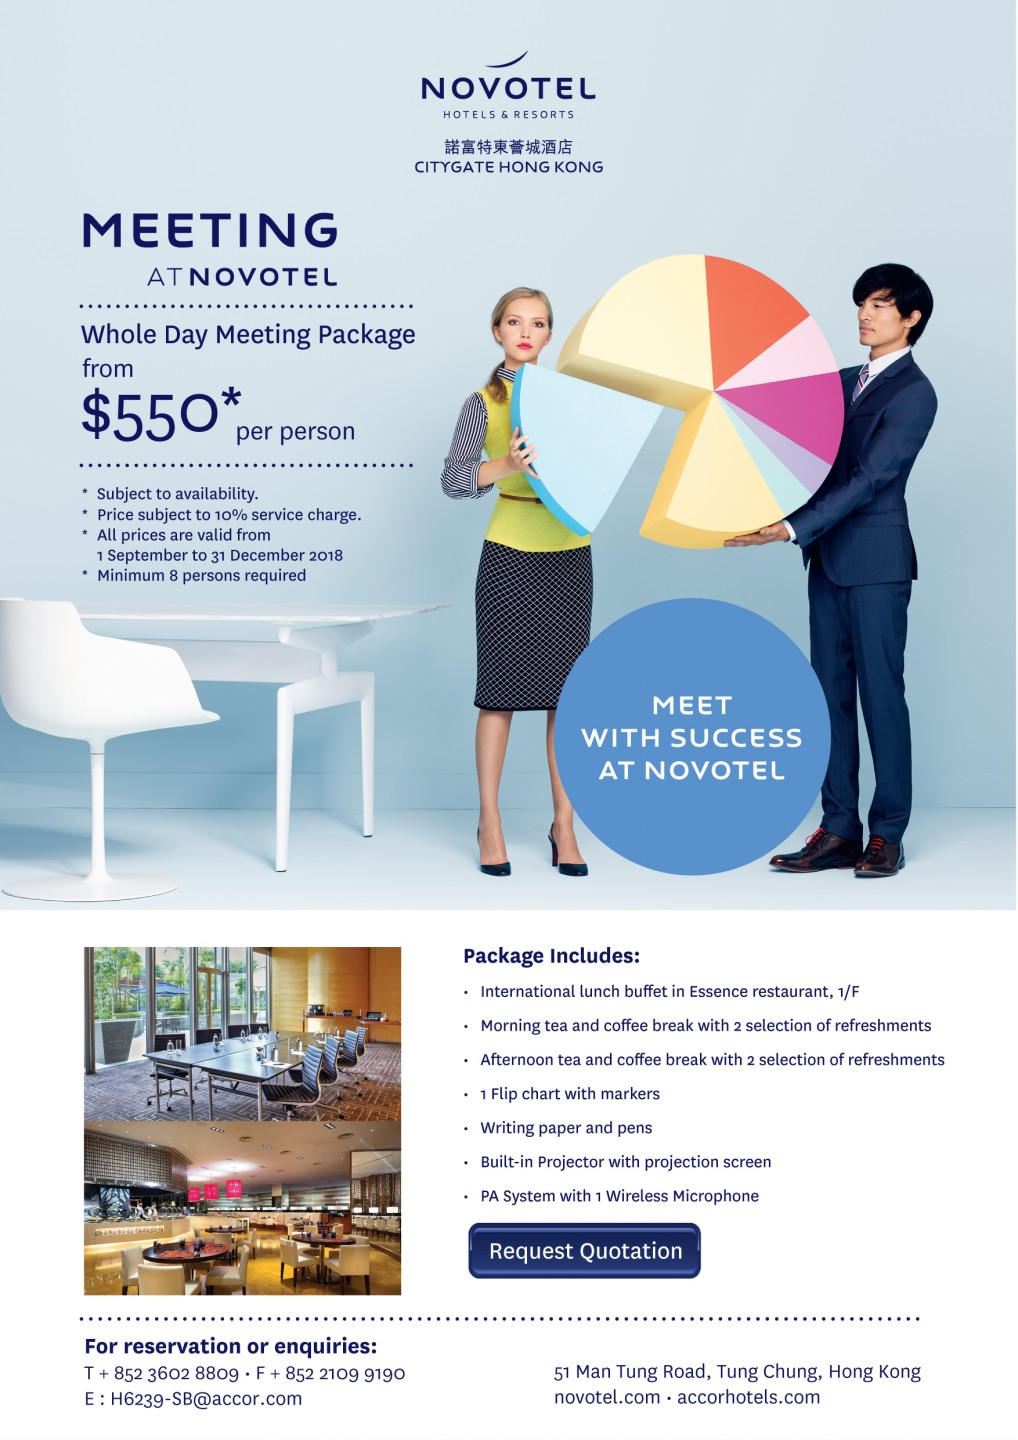 Meeting Package at Novotel Citygate Hong Kong in Tung Chung